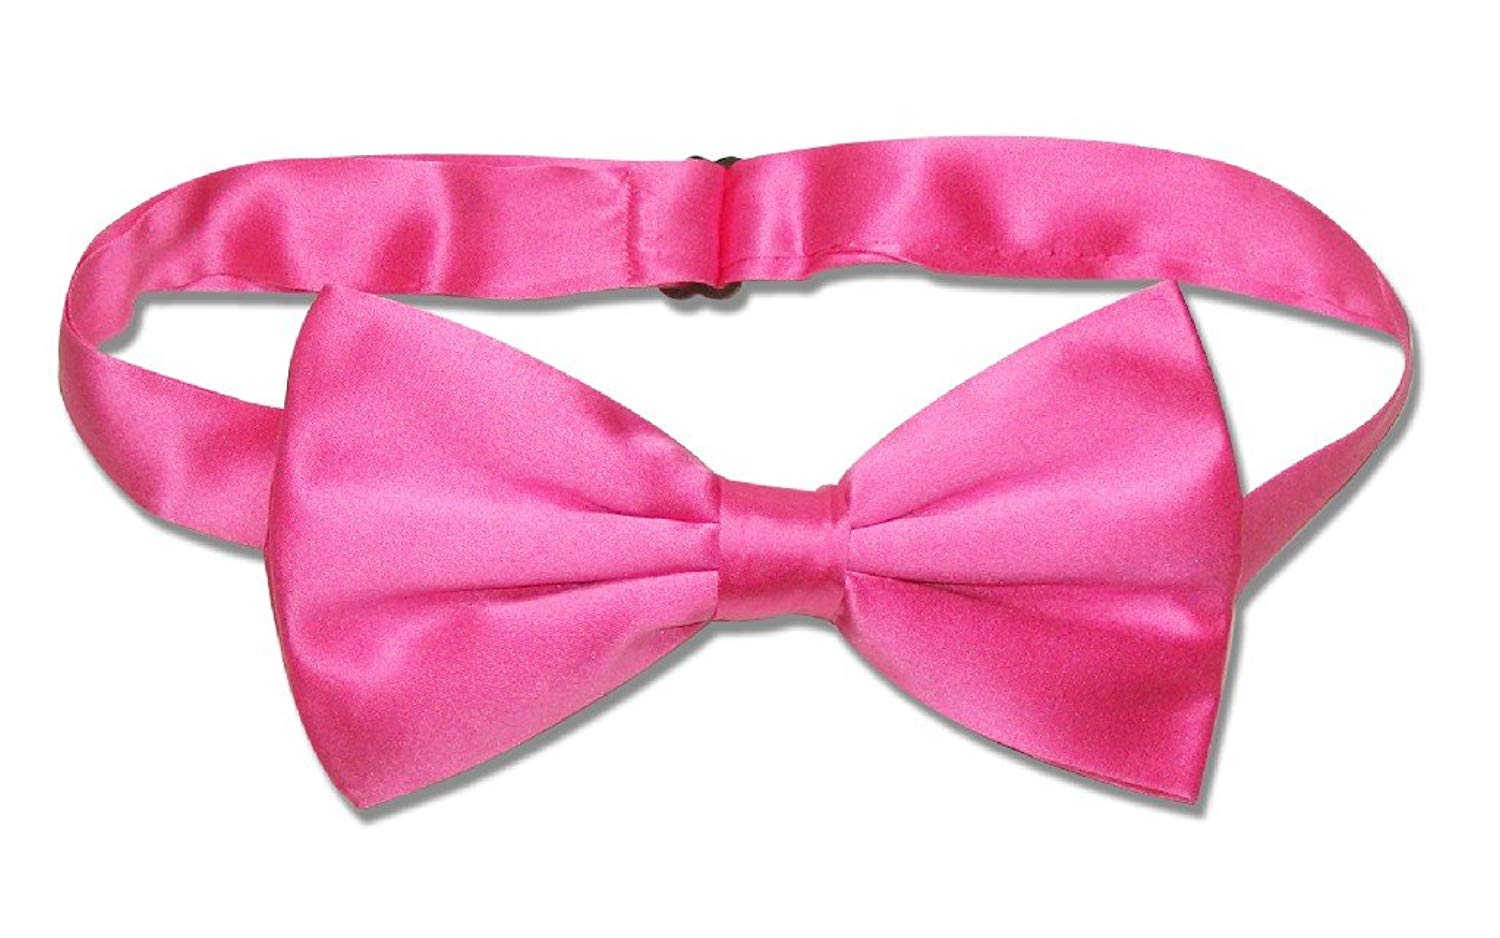 abcb0b53da87 100% SILK BOWTIE Solid HOT PINK FUCHSIA Color Men's Bow Tie for Tuxedo or  Suit